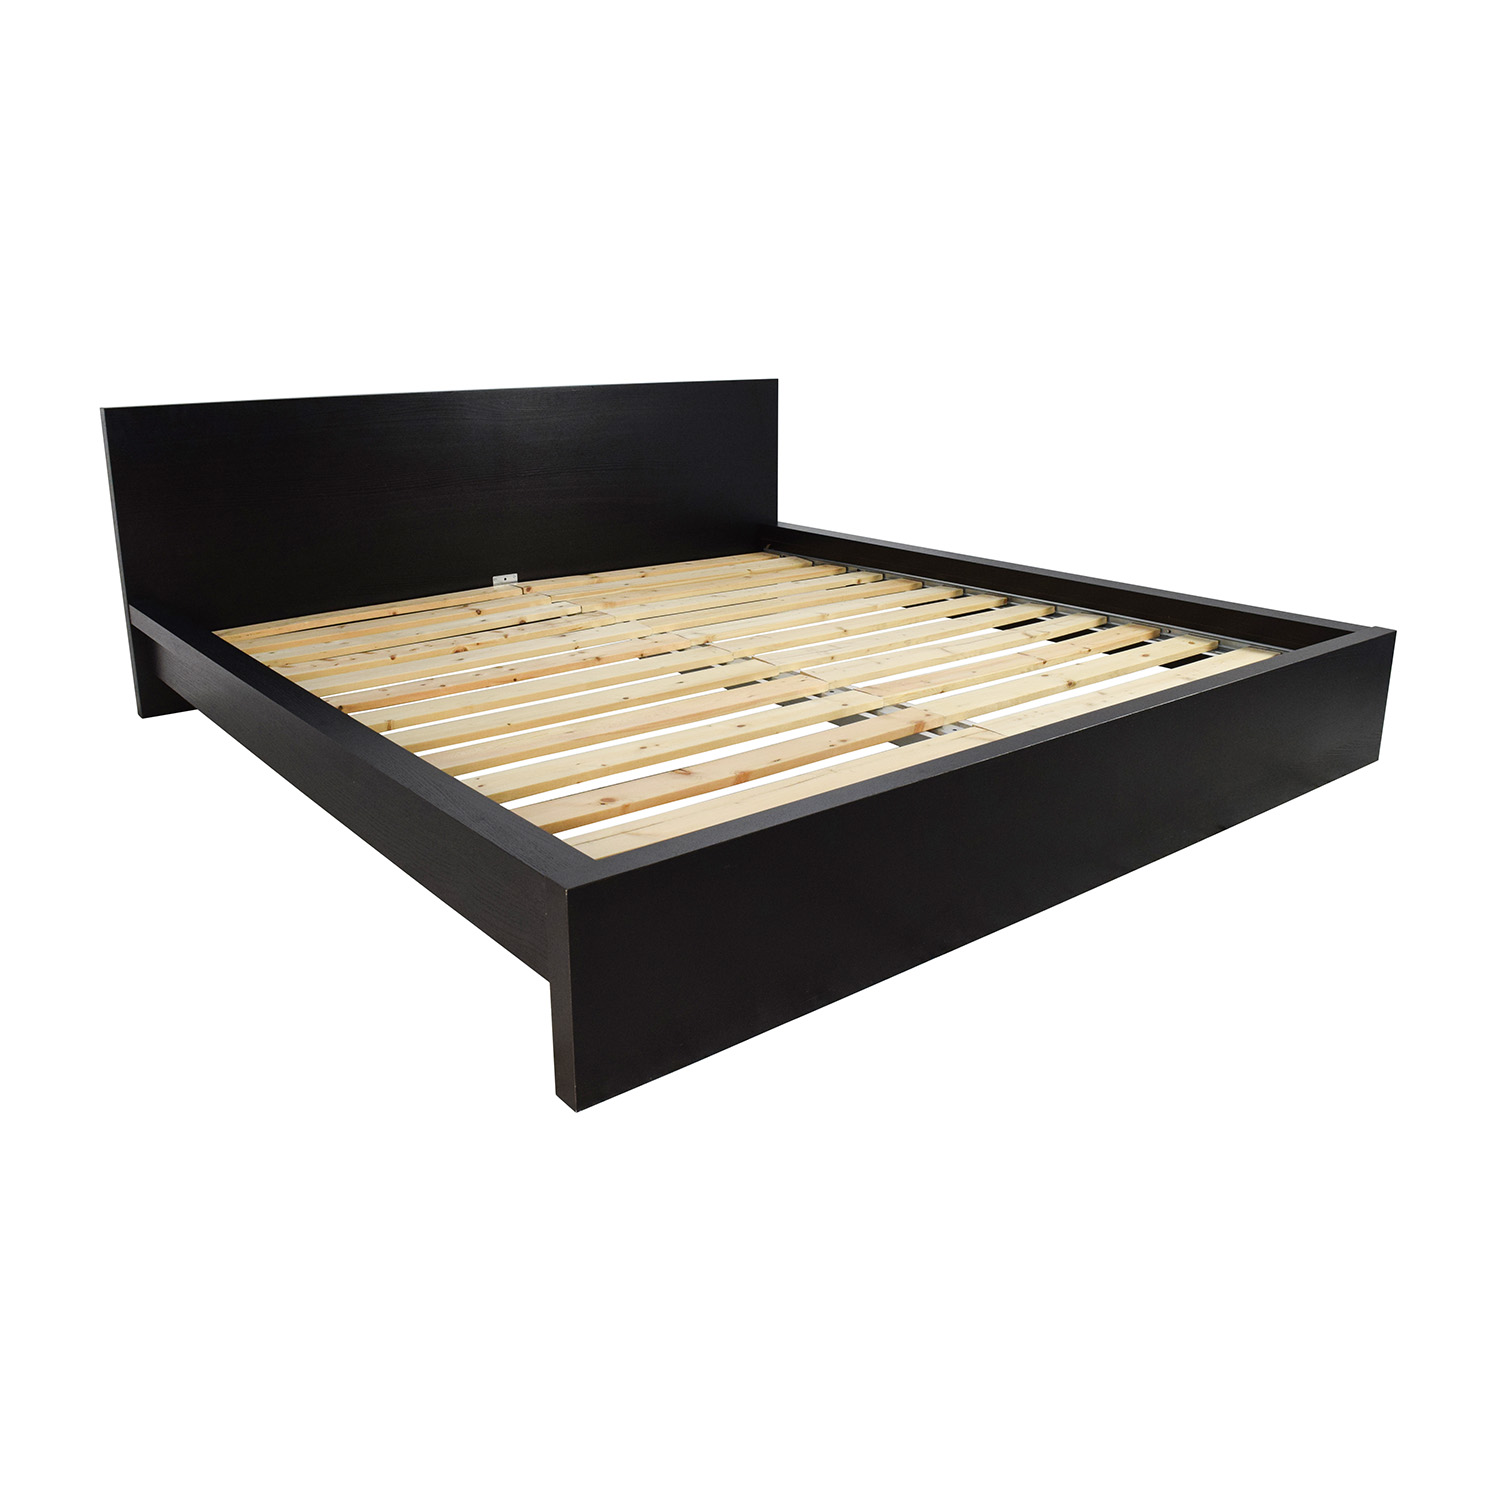 81 Off Ikea Ikea Malm King Size Bed Beds,Best Time To Rent A House